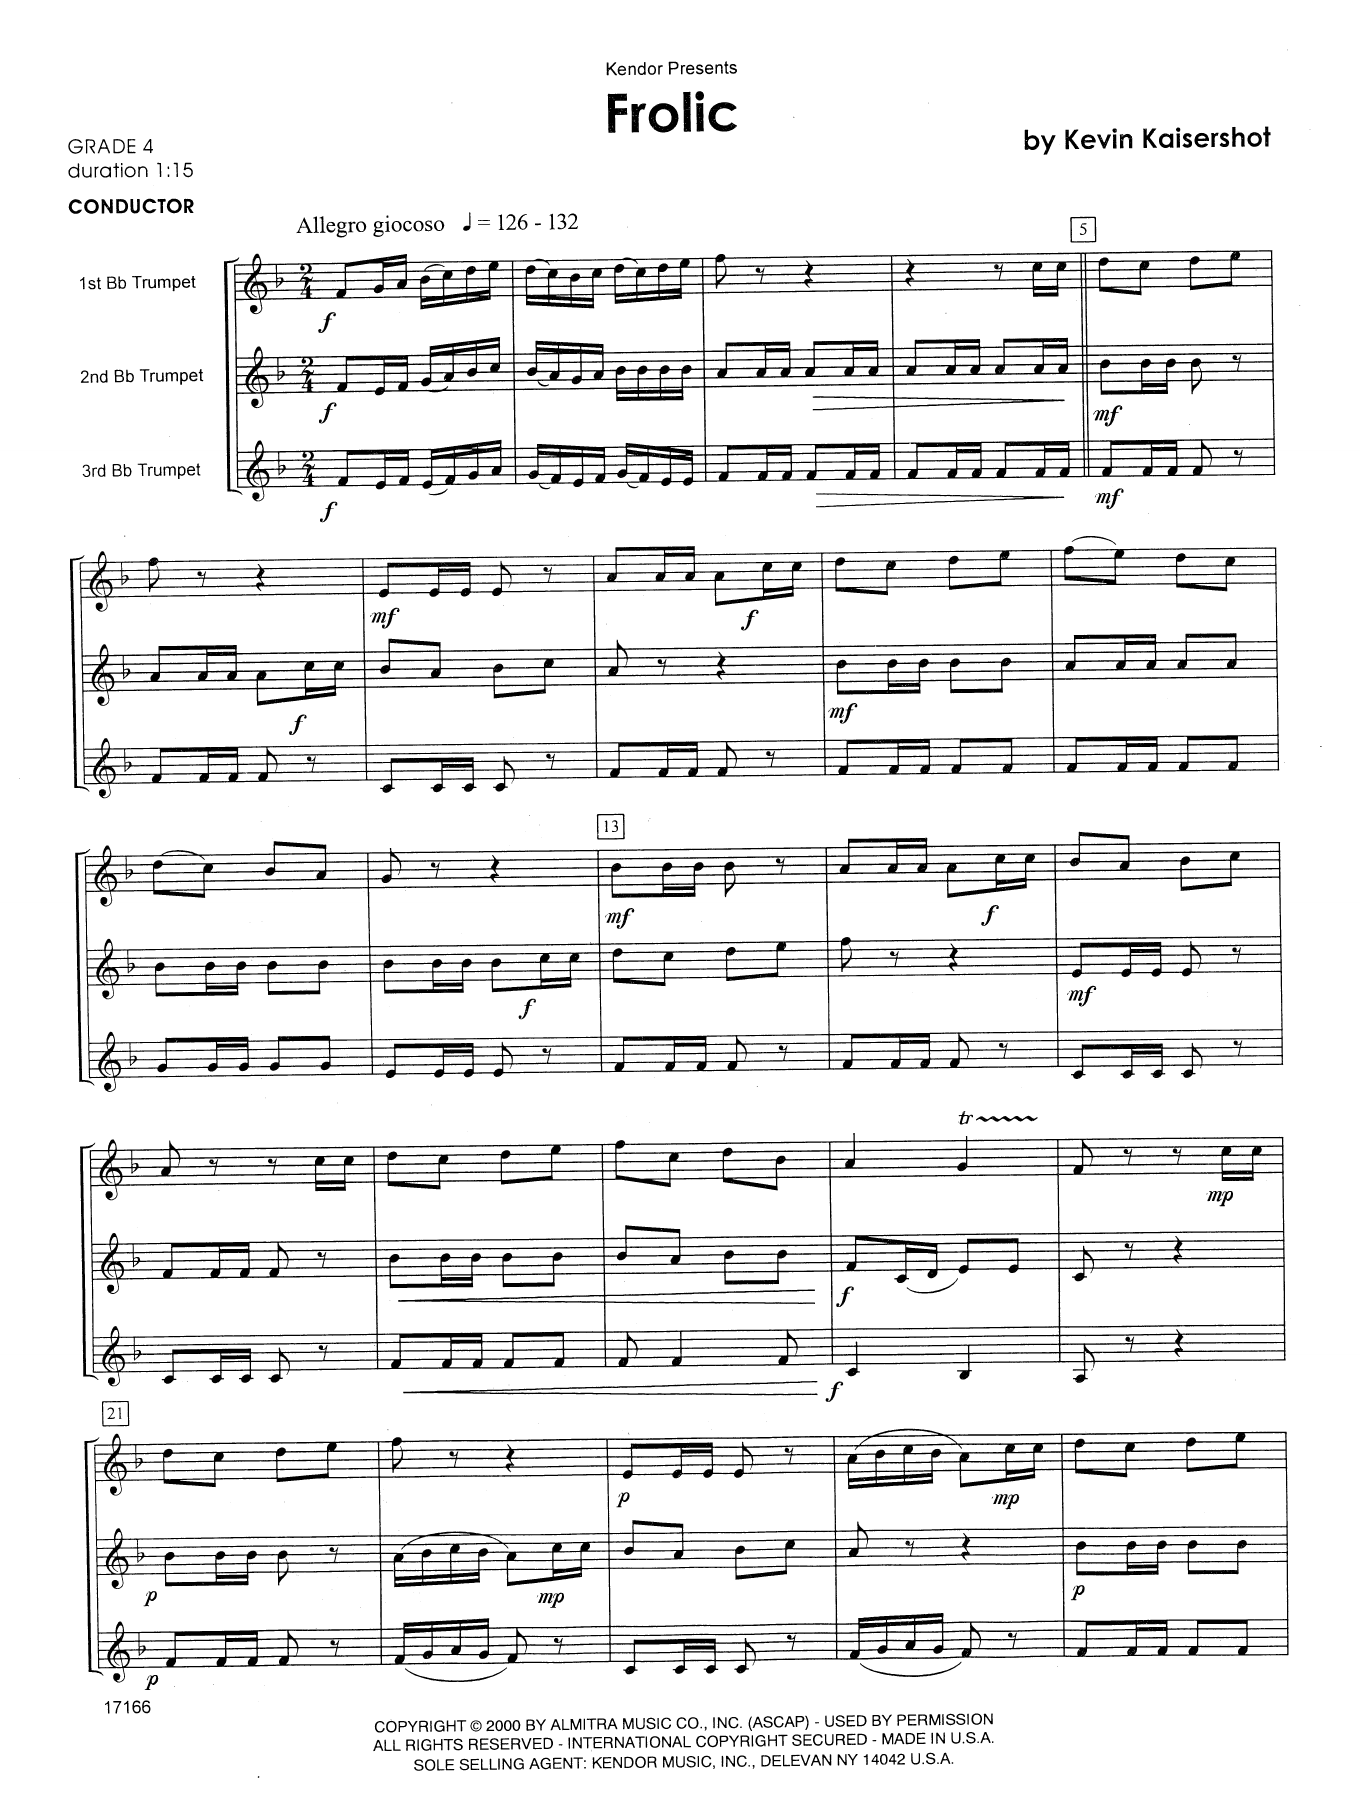 Frolic - Full Score Sheet Music